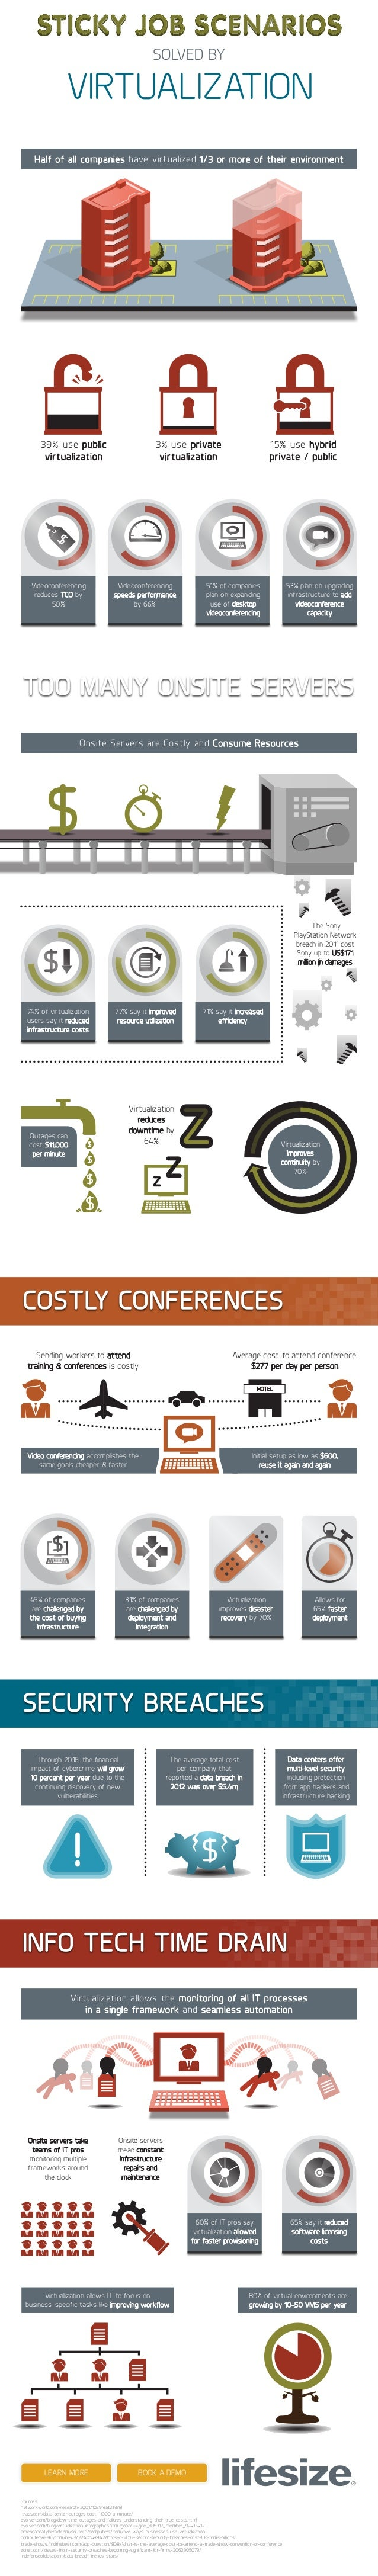 [INFOGRAPHIC] Virtualization and Mobility: Why Companies Shouldn't Ignore These Trends